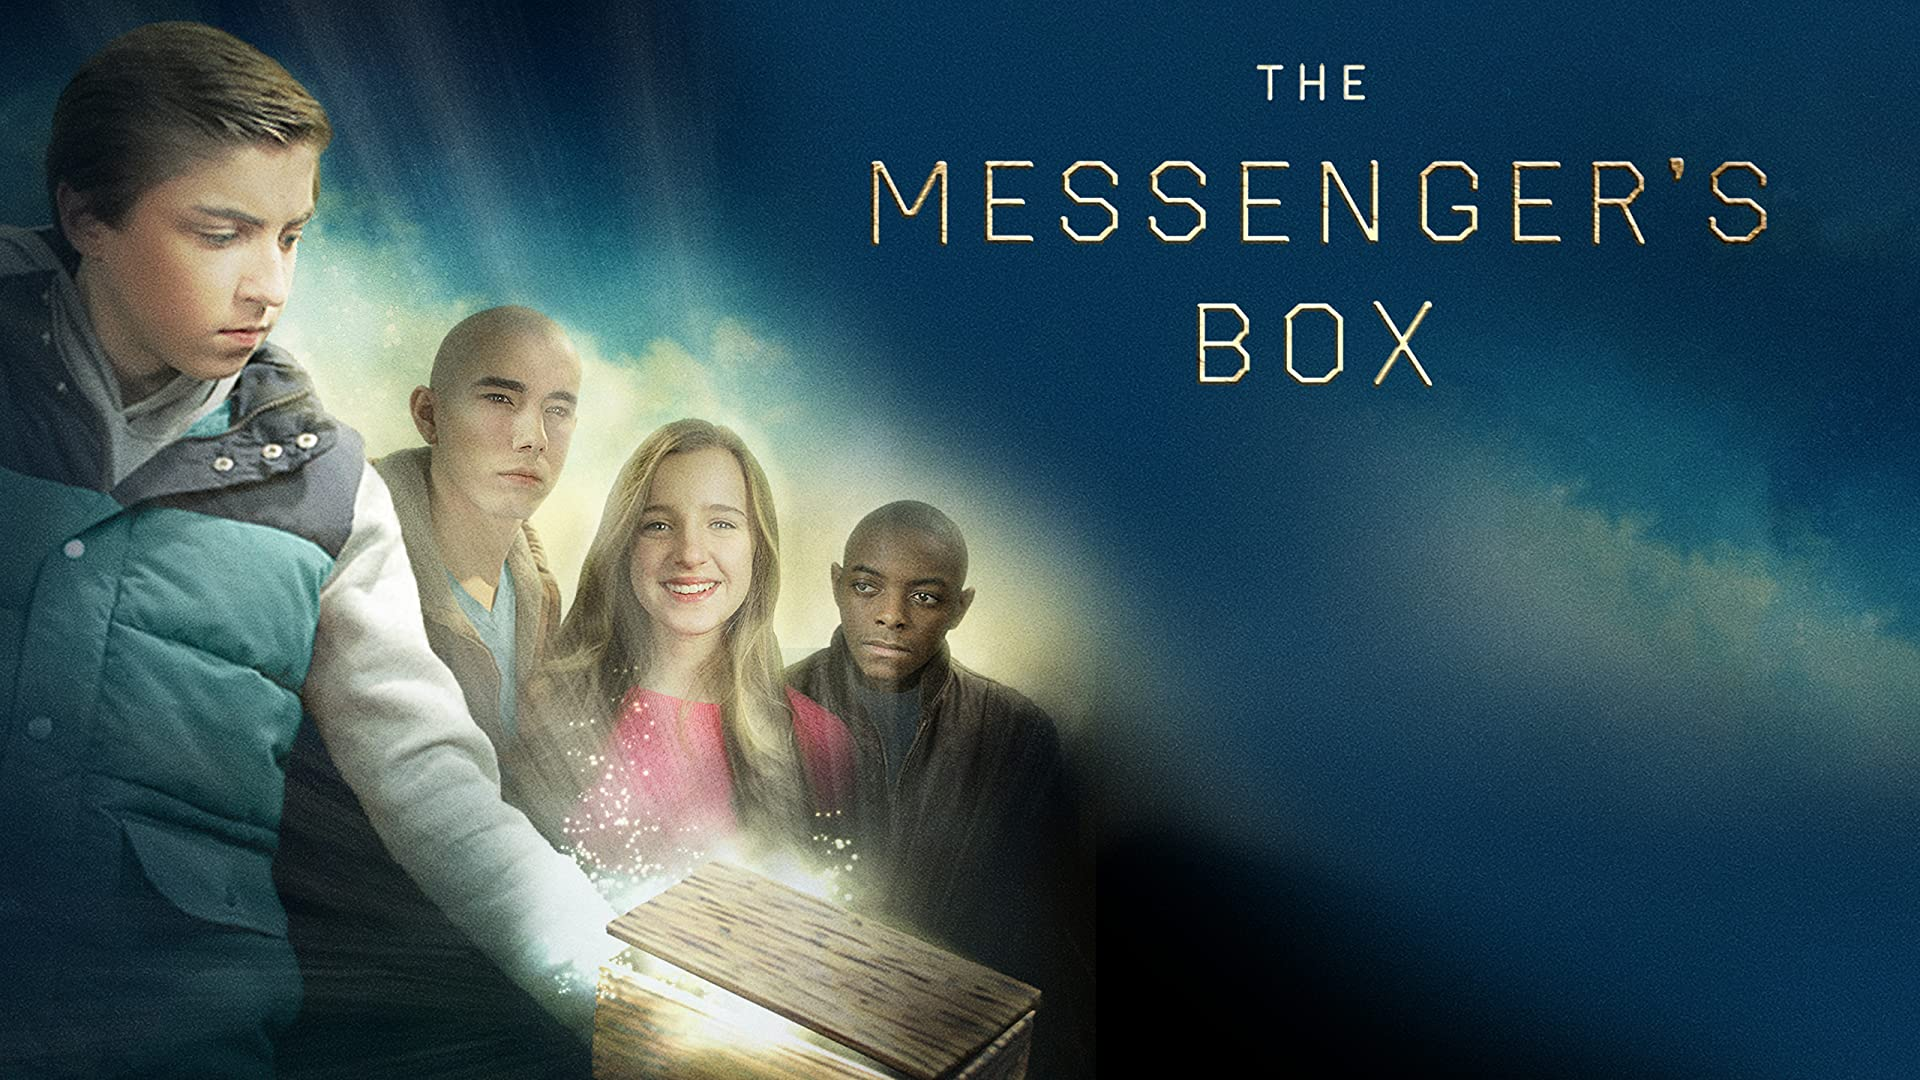 The Messenger's Box